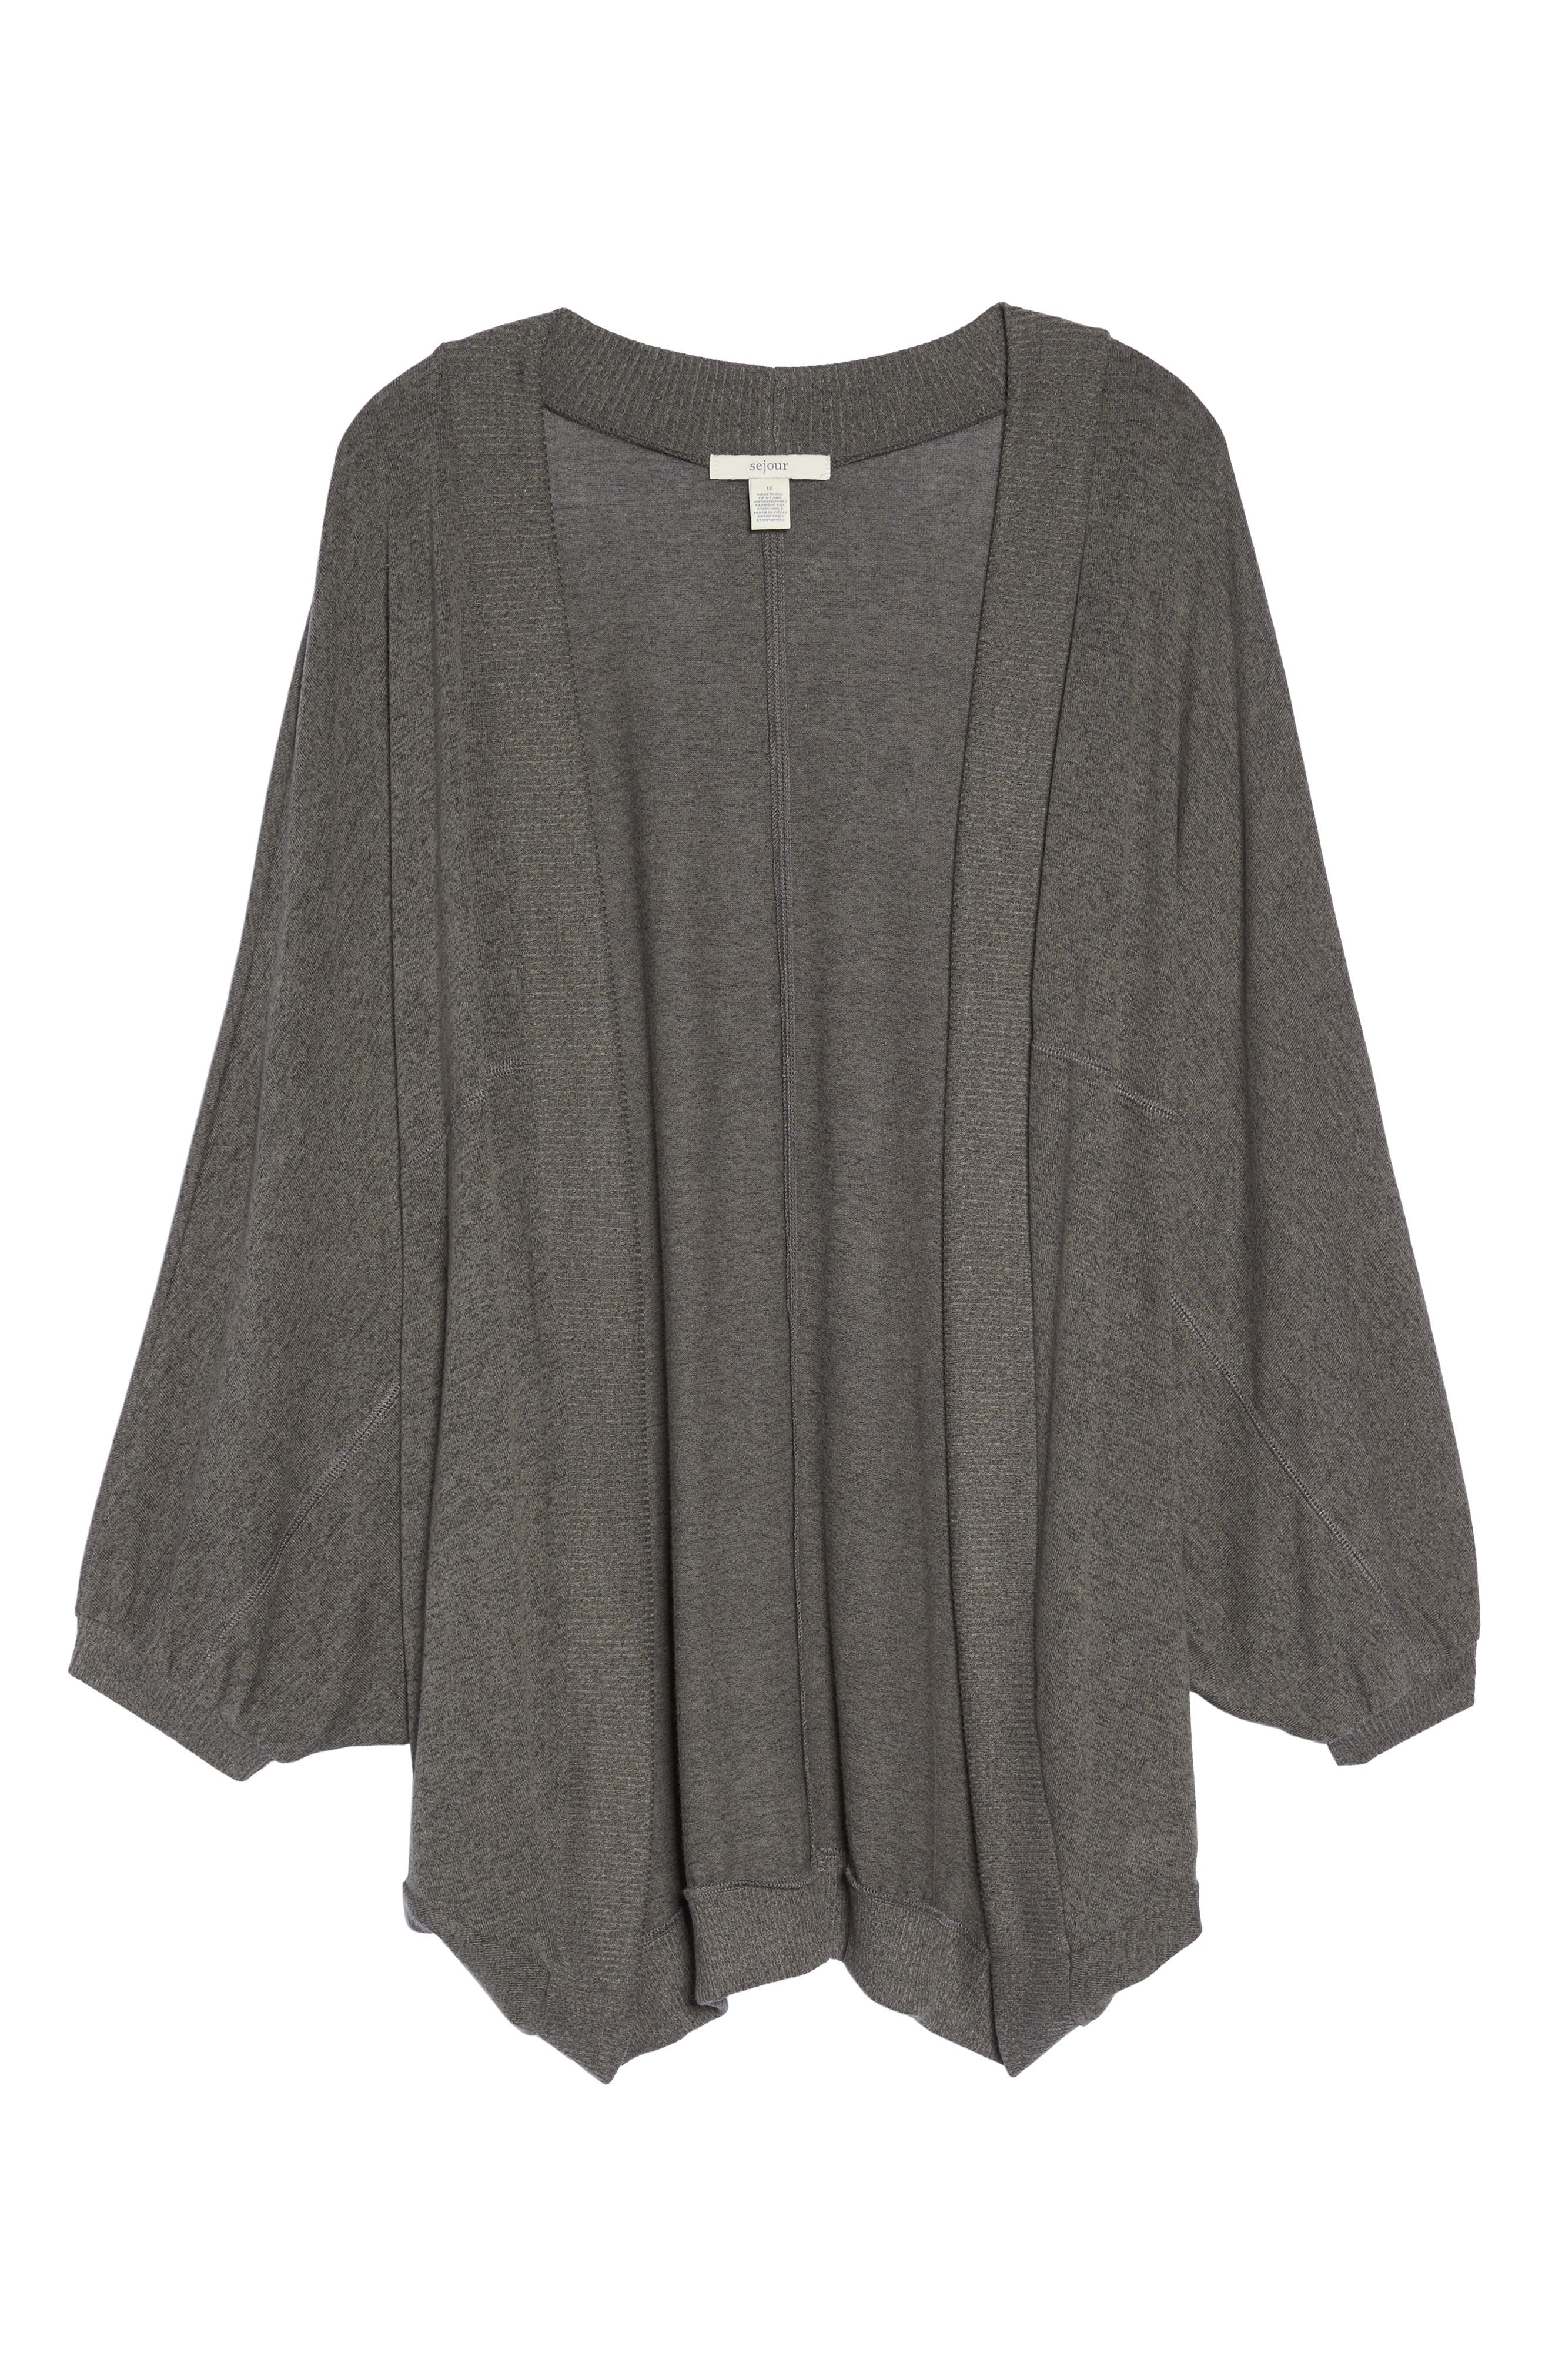 Hacci Cocoon Cardigan,                             Alternate thumbnail 6, color,                             Grey Medium Charcoal Heather